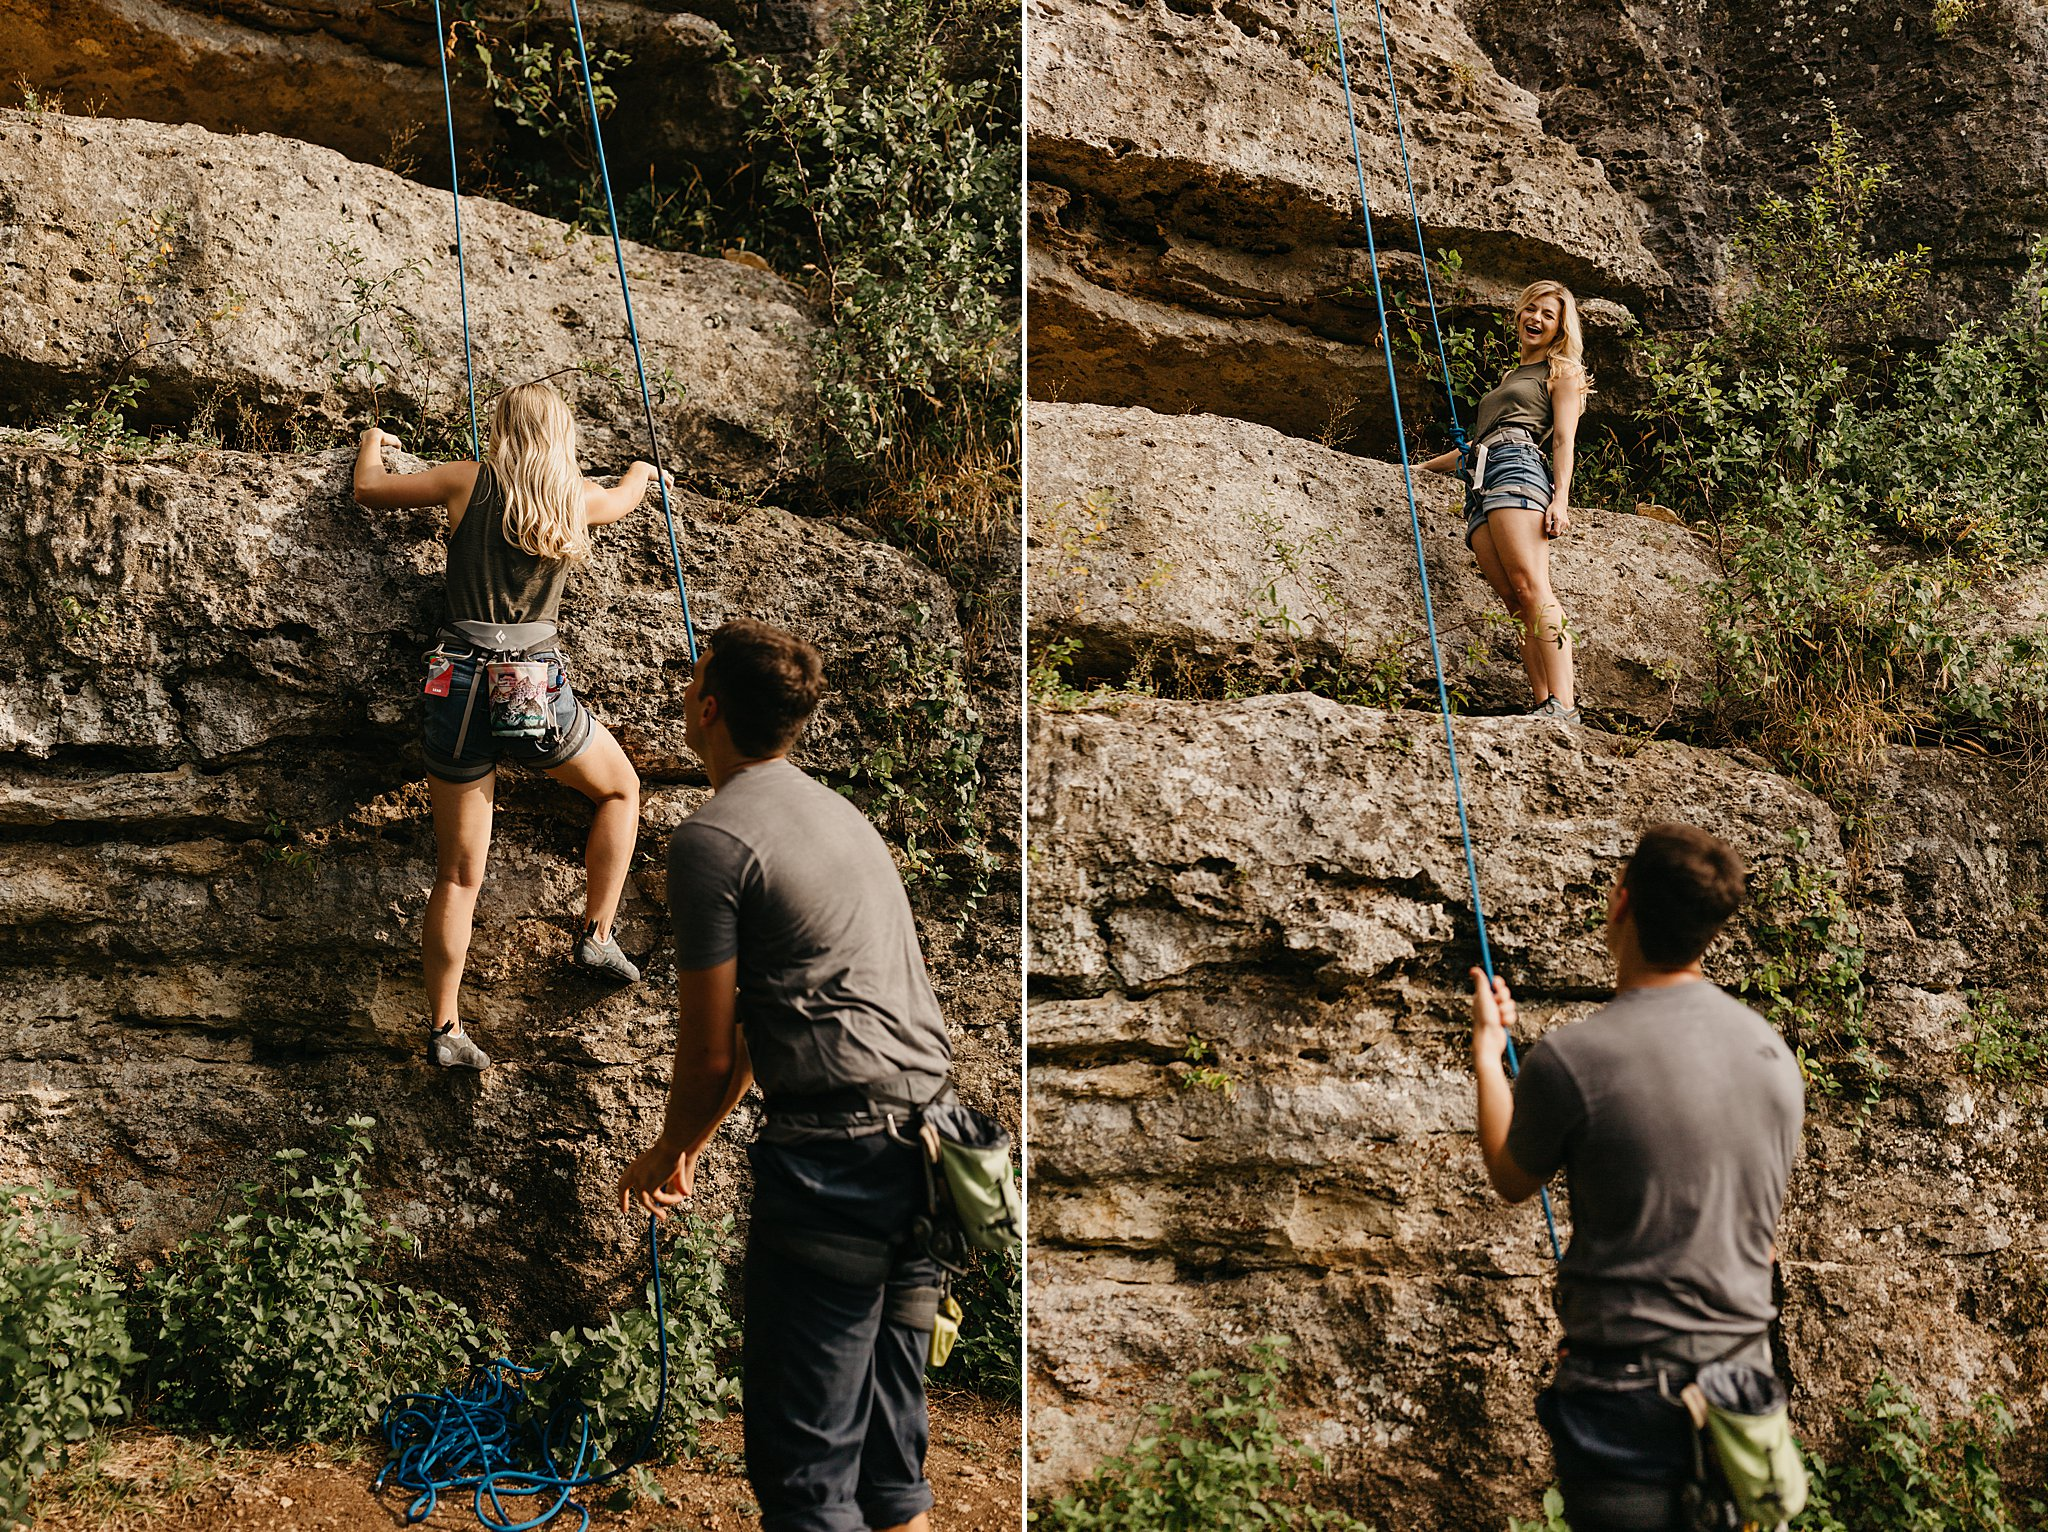 Wilderlove Co_Wedding Photographer_Dripping Springs Photography_Adventure Engagemenet_Rock Climbing Engagement_Hill Country Photographer_North Texas Photographer_0007.jpg